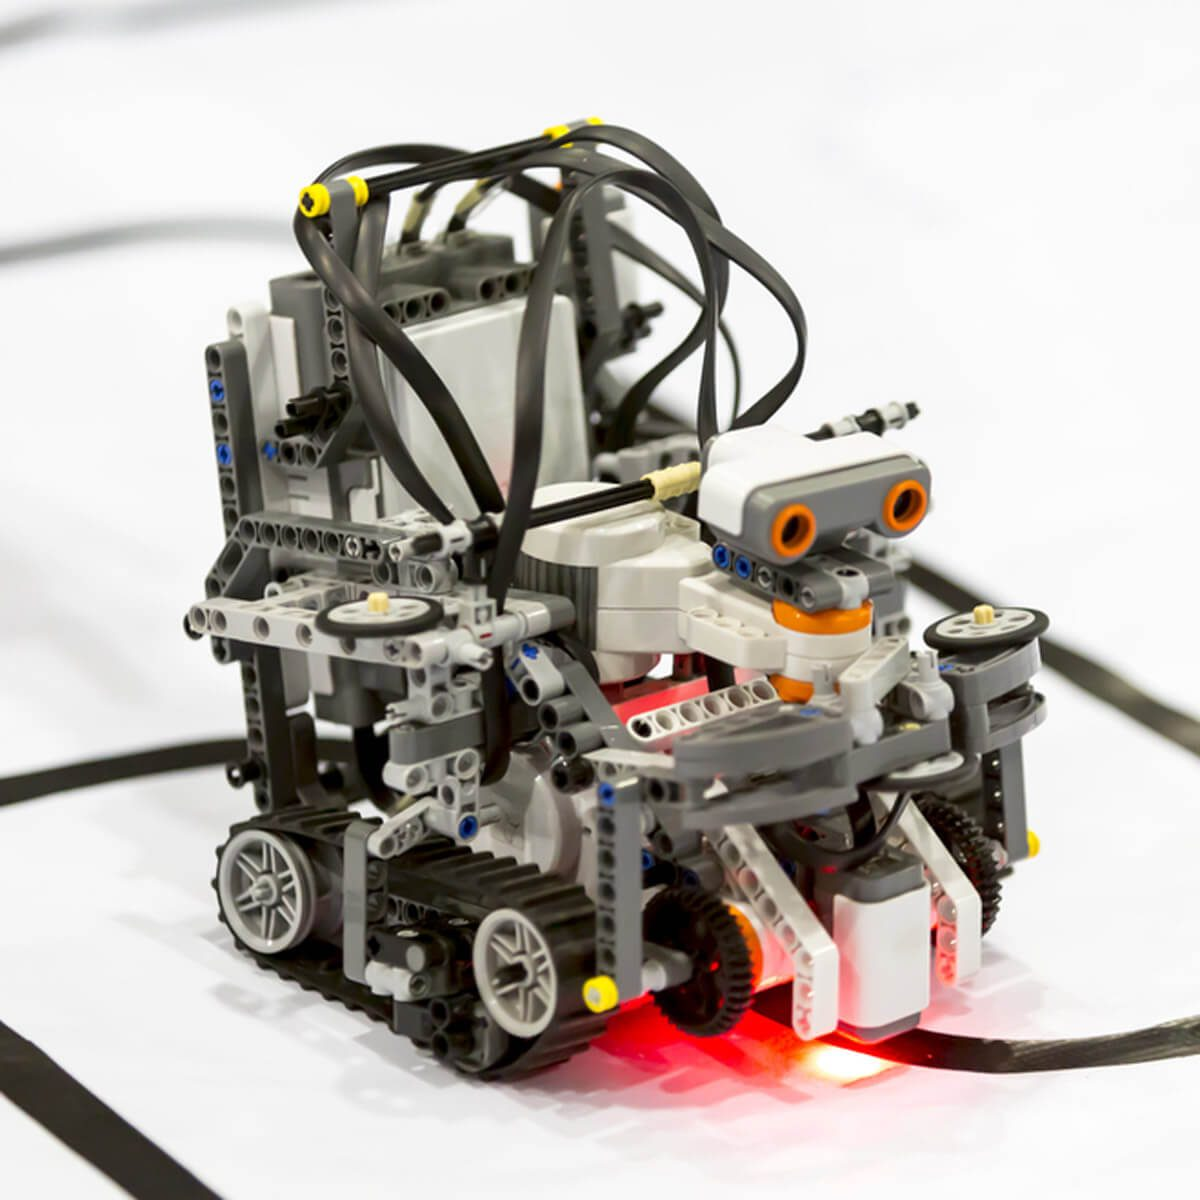 Lego Robots that Work